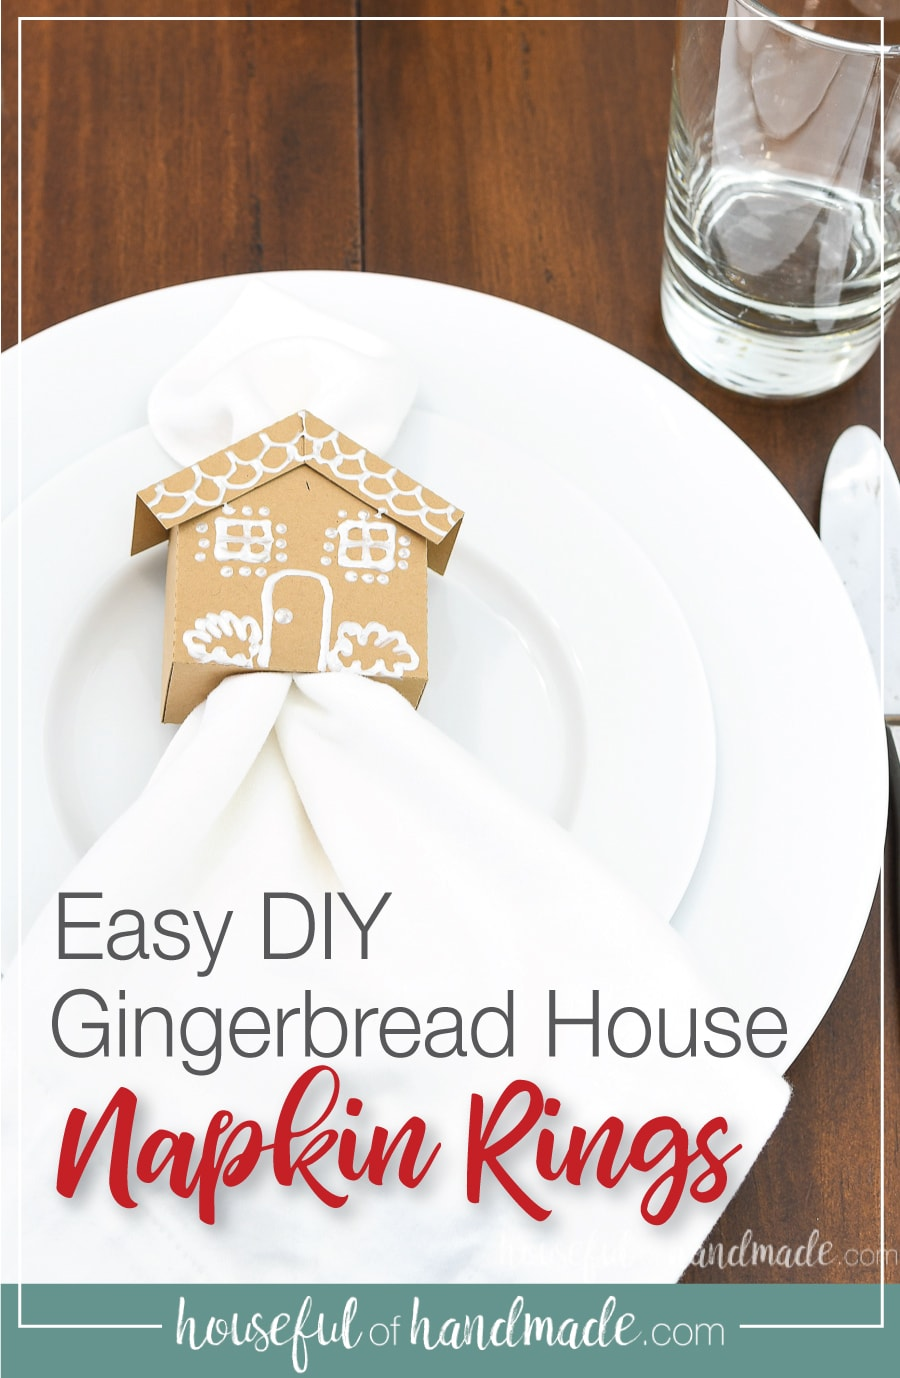 Picture of table setting with gingerbread house napkin ring on the plate and text overlay: Easy DIY gingerbread house napkin rings.